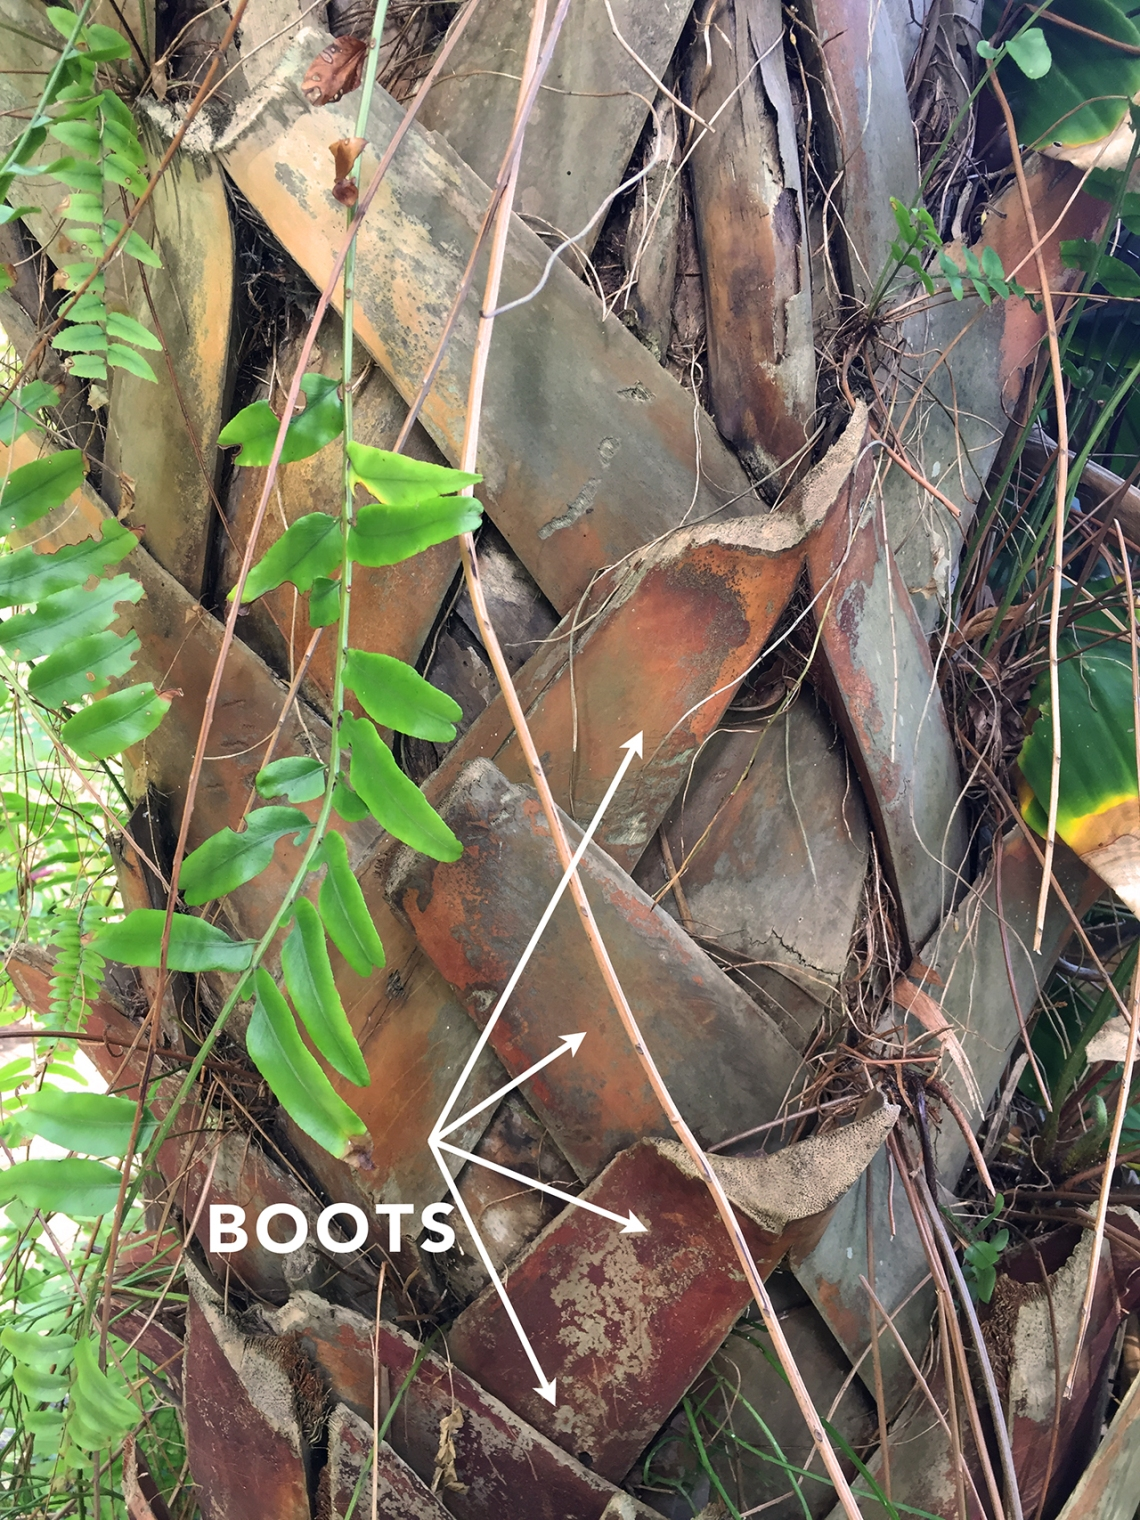 Cabbage Palm Boots